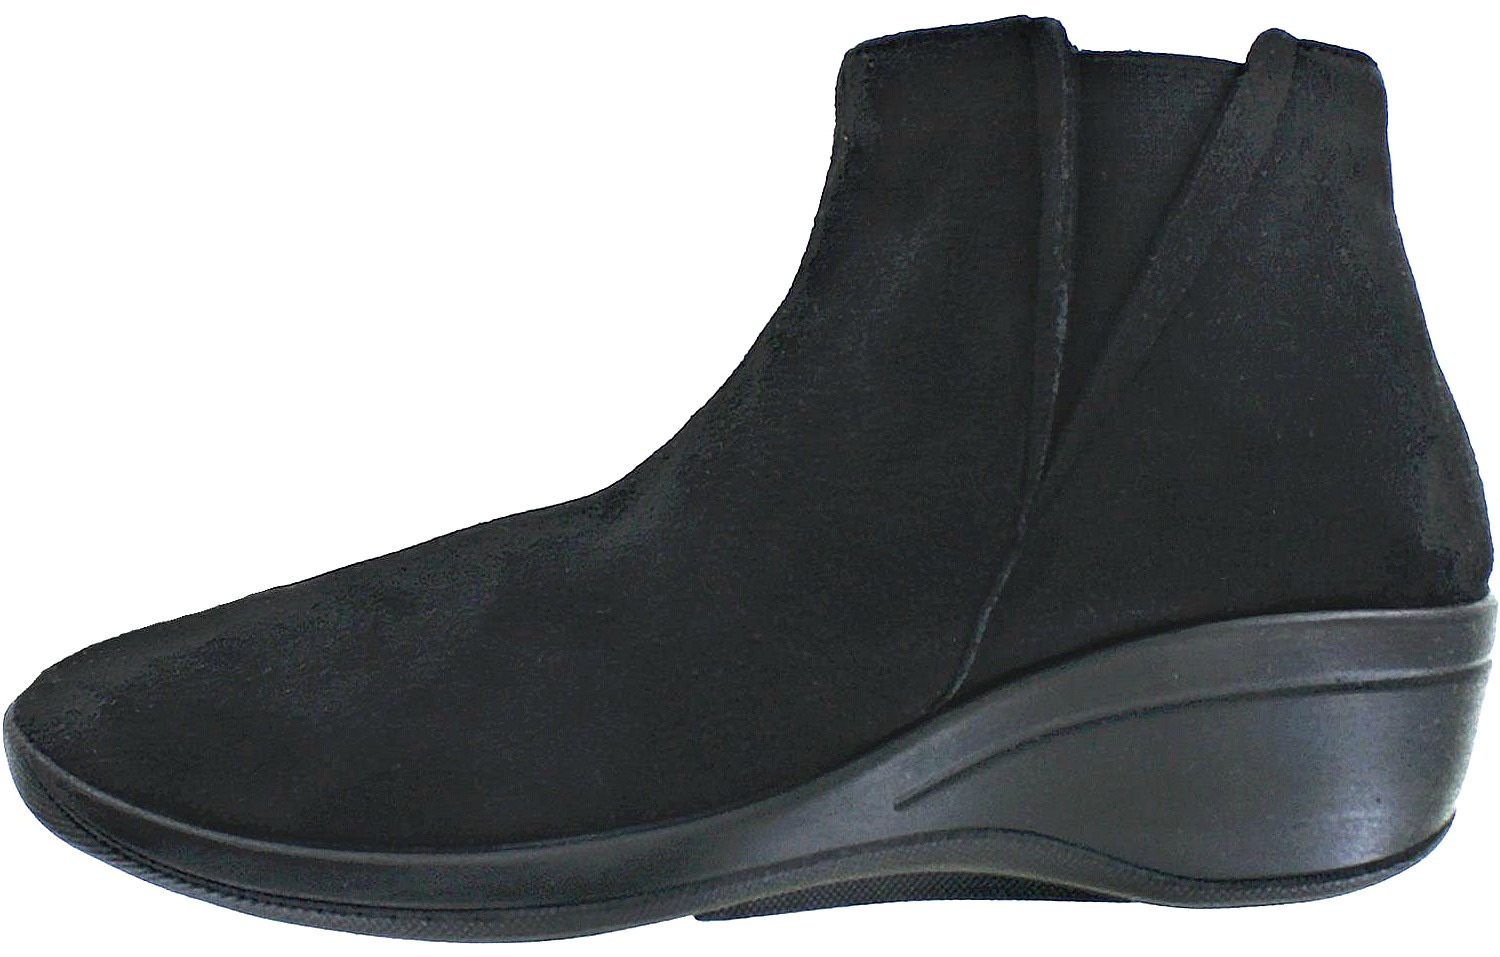 33c5f9dbc39a 10 Best Black Ankle Boots for Walking